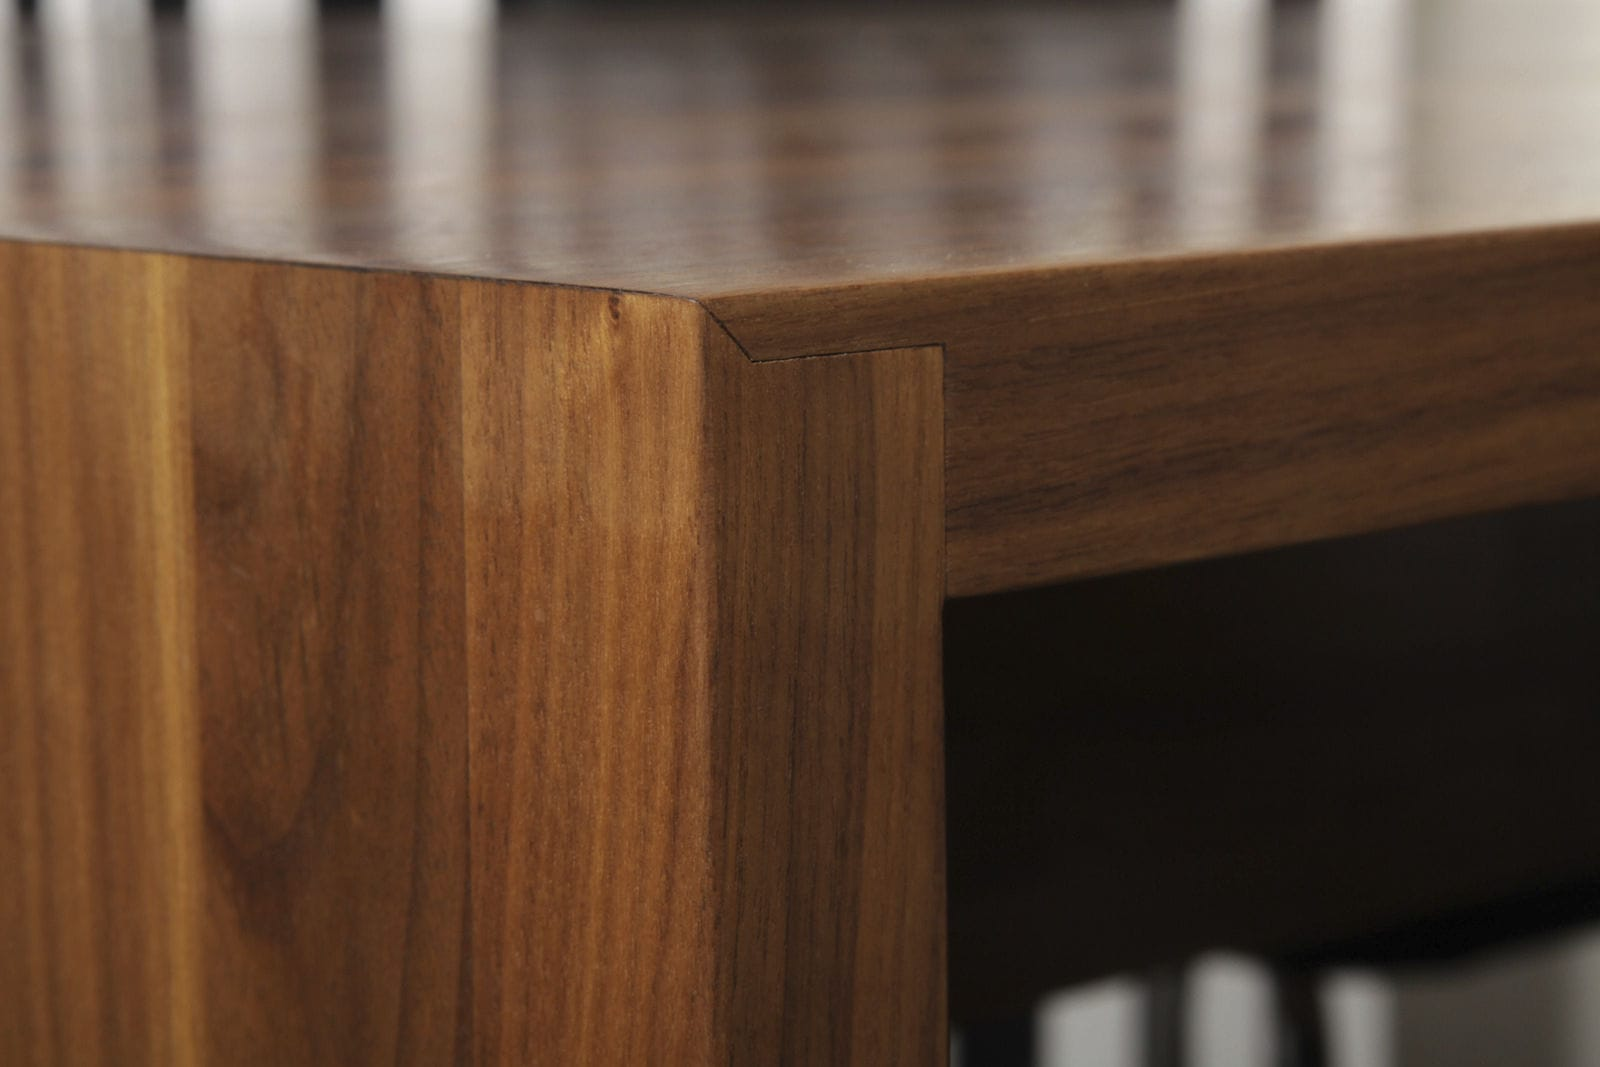 encimera de madera maciza para cocina american walnut desk form as